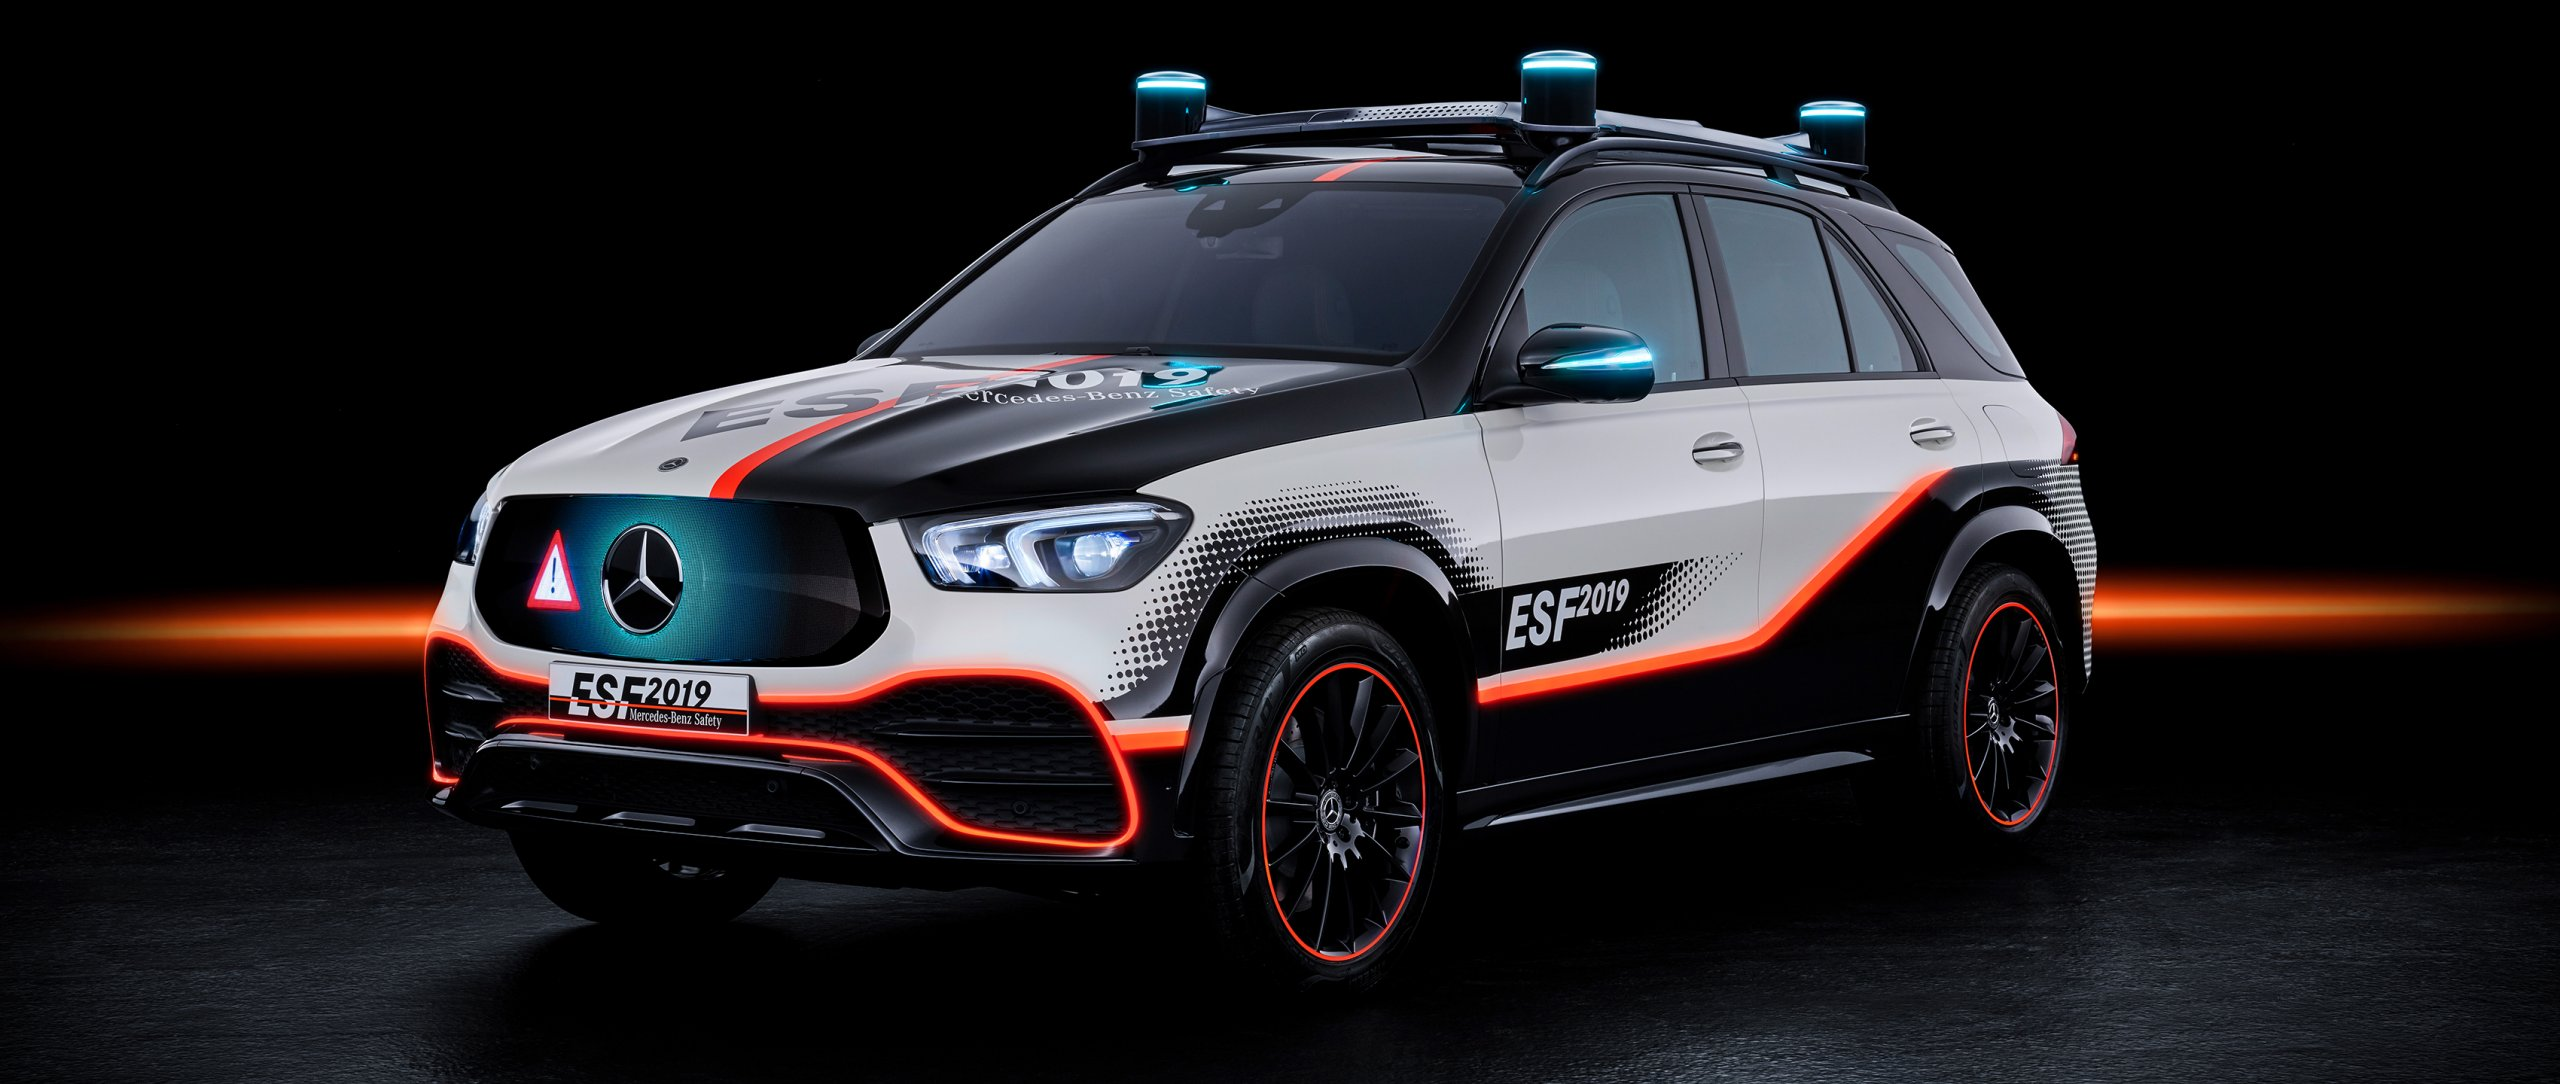 The Mercedes-Benz ESF (2019).